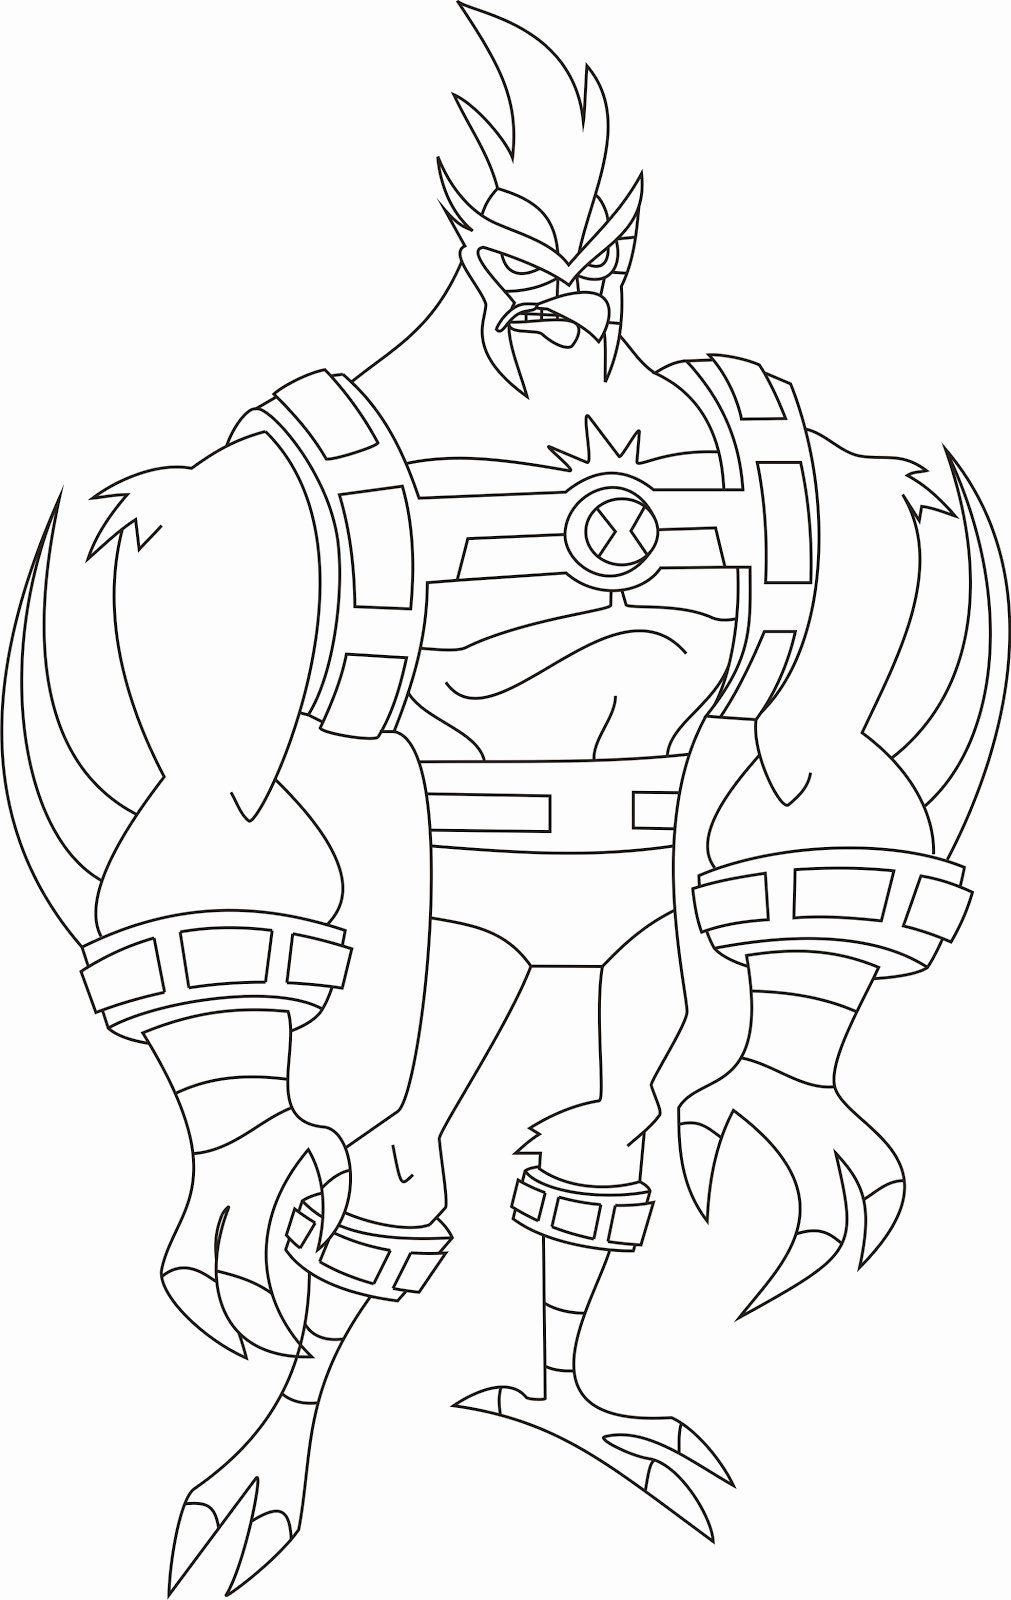 Raging Humungousaur Ready To Fight Coloring Page Download Print Online Coloring Pages For Free Color Coloring Pages Online Coloring Pages Online Coloring